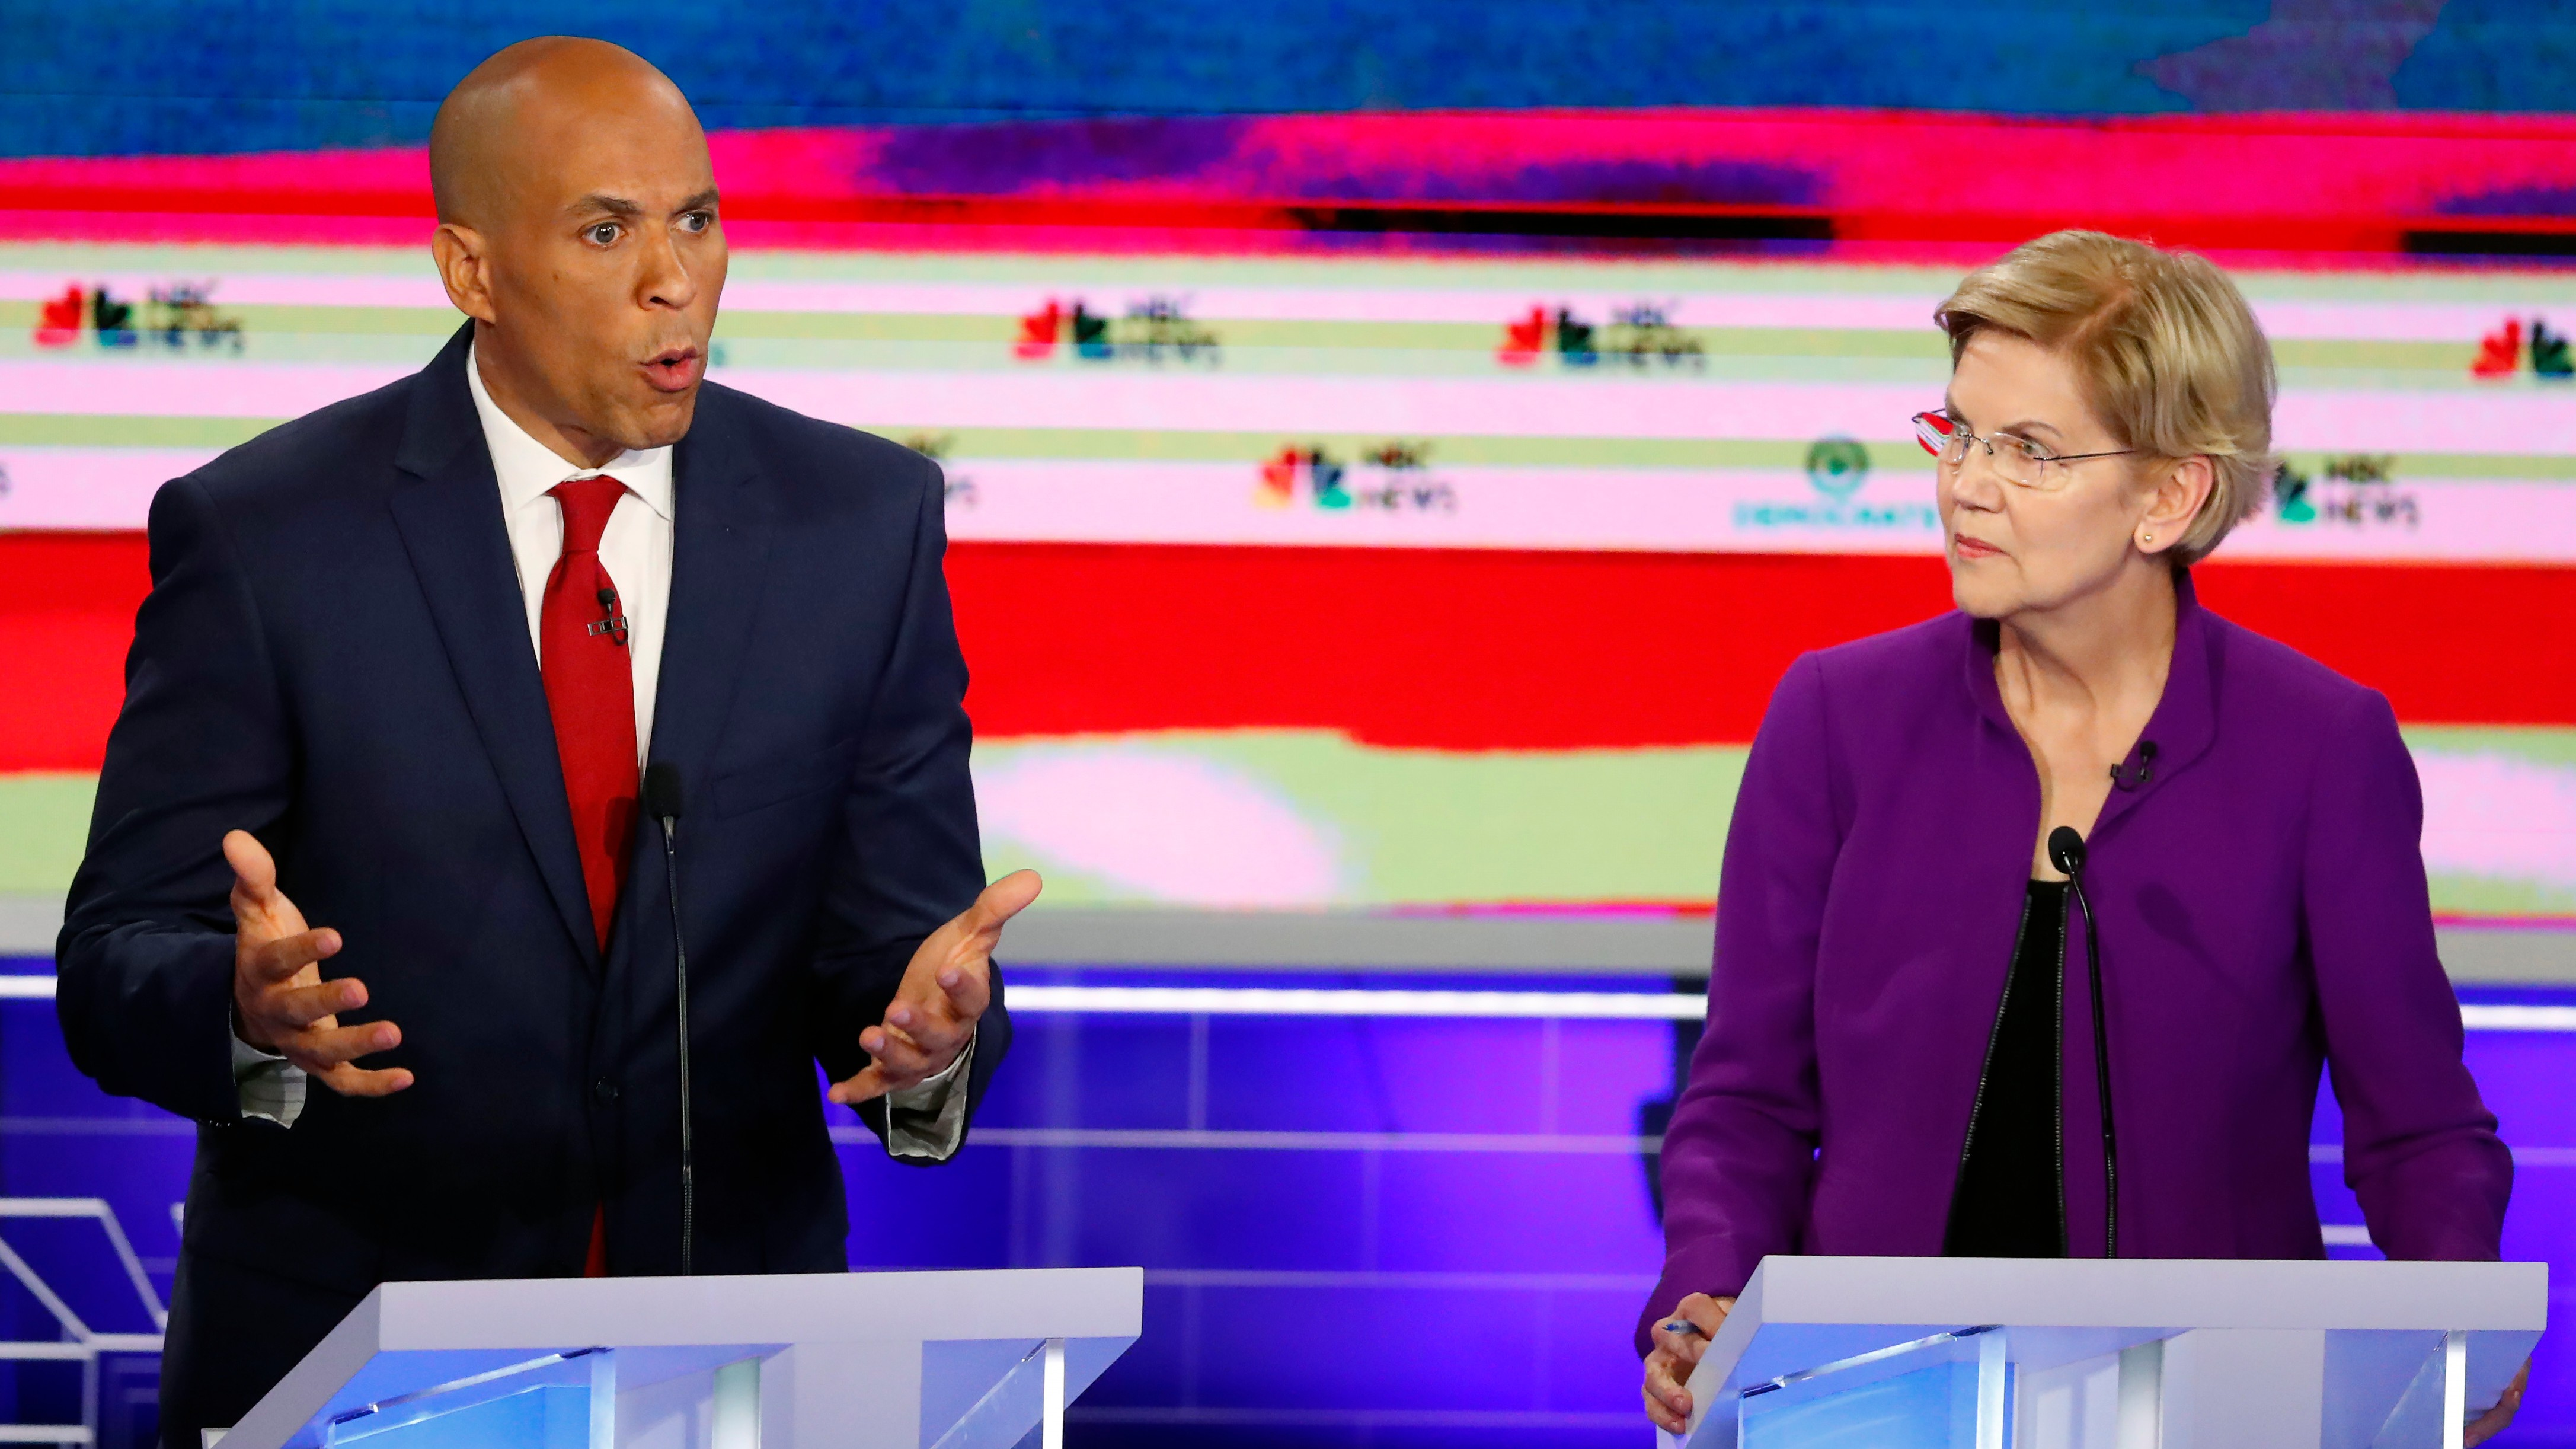 The Democrats are maybe, sorta, thinking about hosting a climate debate